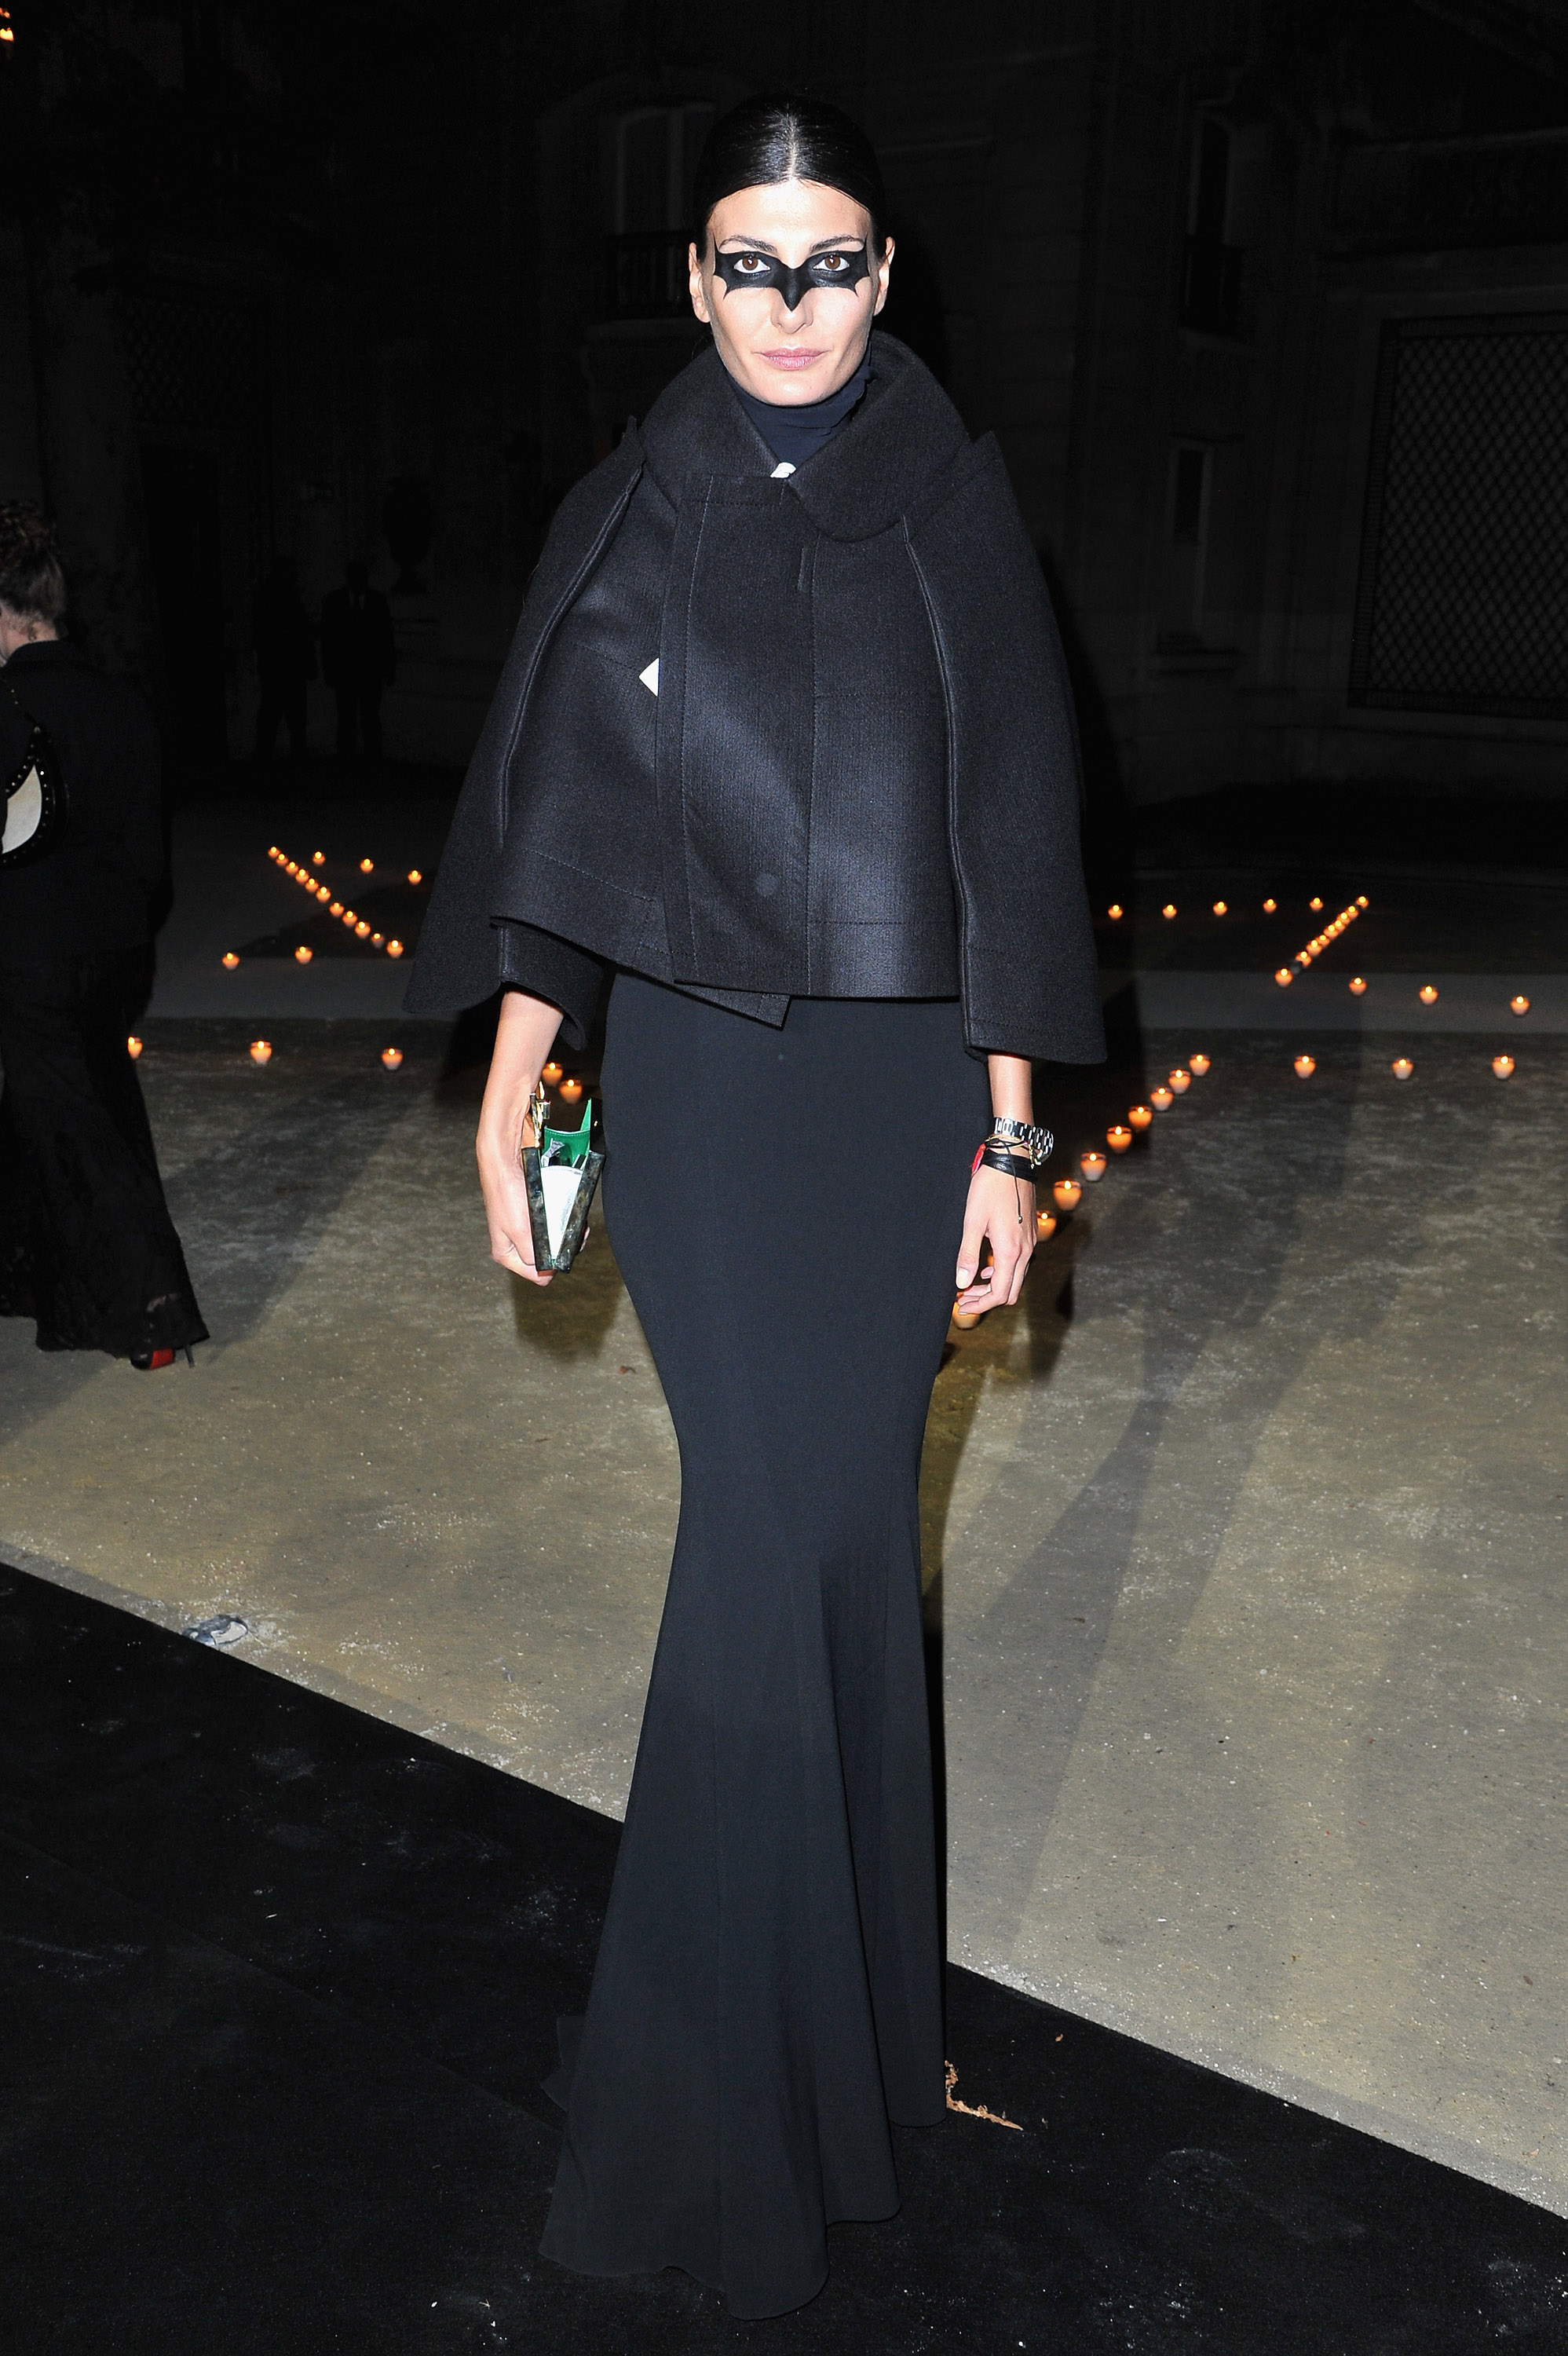 Giovanna Battaglia caught masquerading as a beautiful creature of the night at Carine Roitfeld's MAC party.